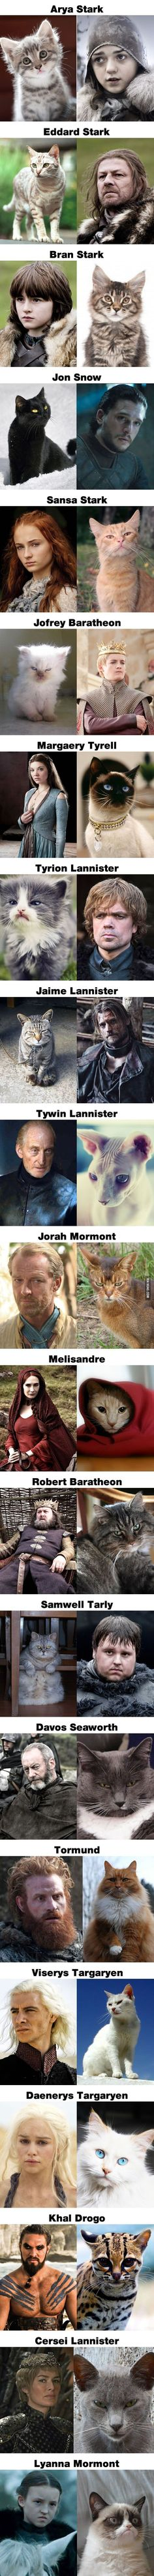 If Game of Thrones Characters Were Cats